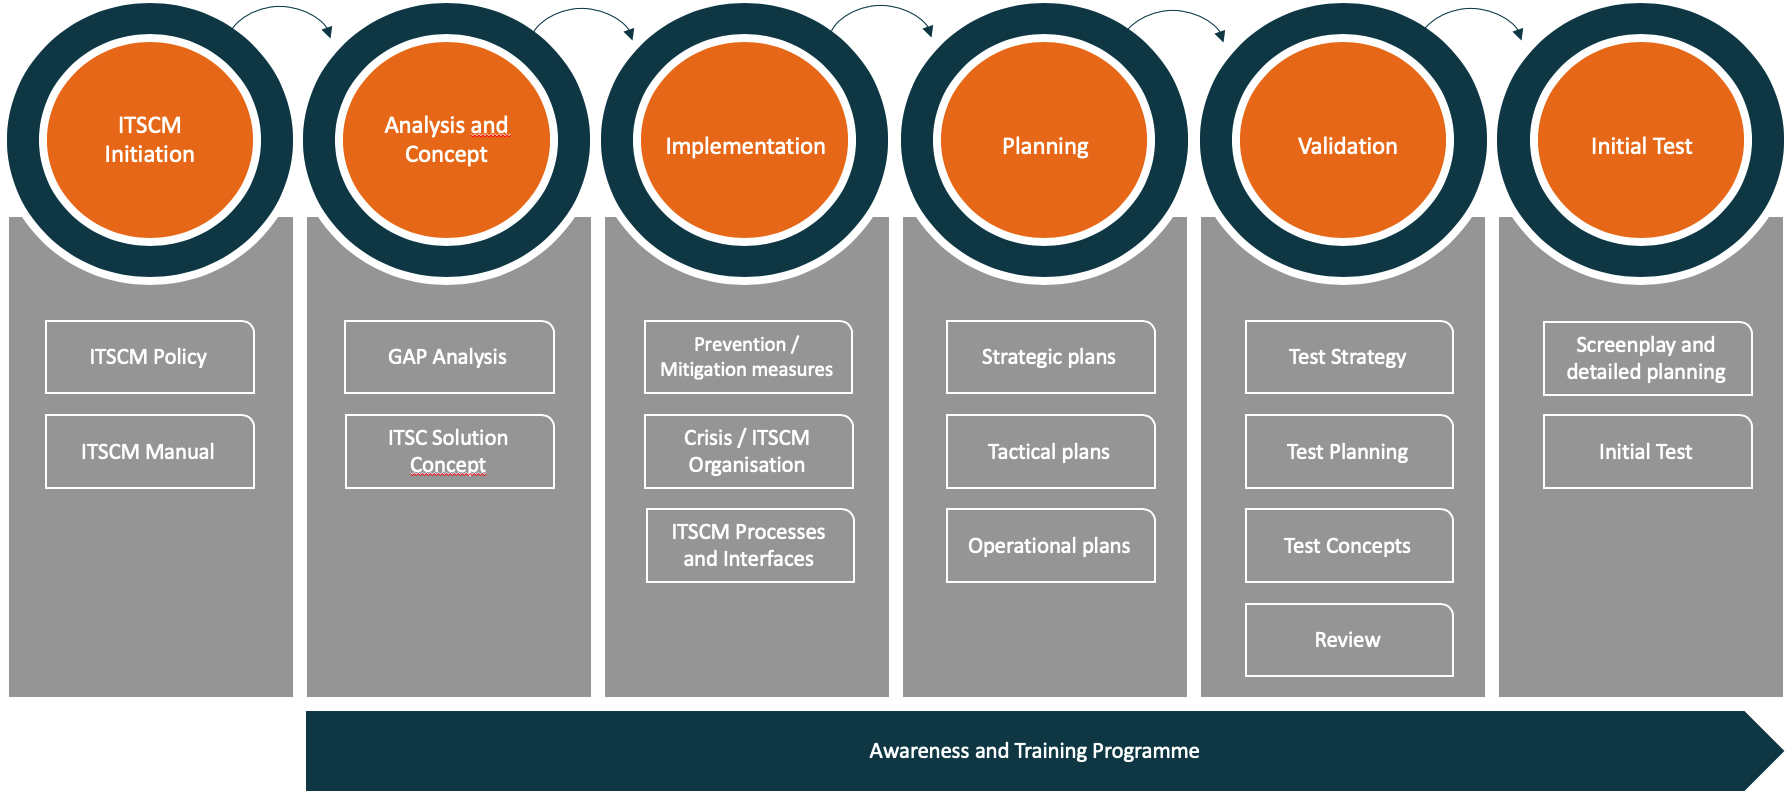 Our ITSCM approach